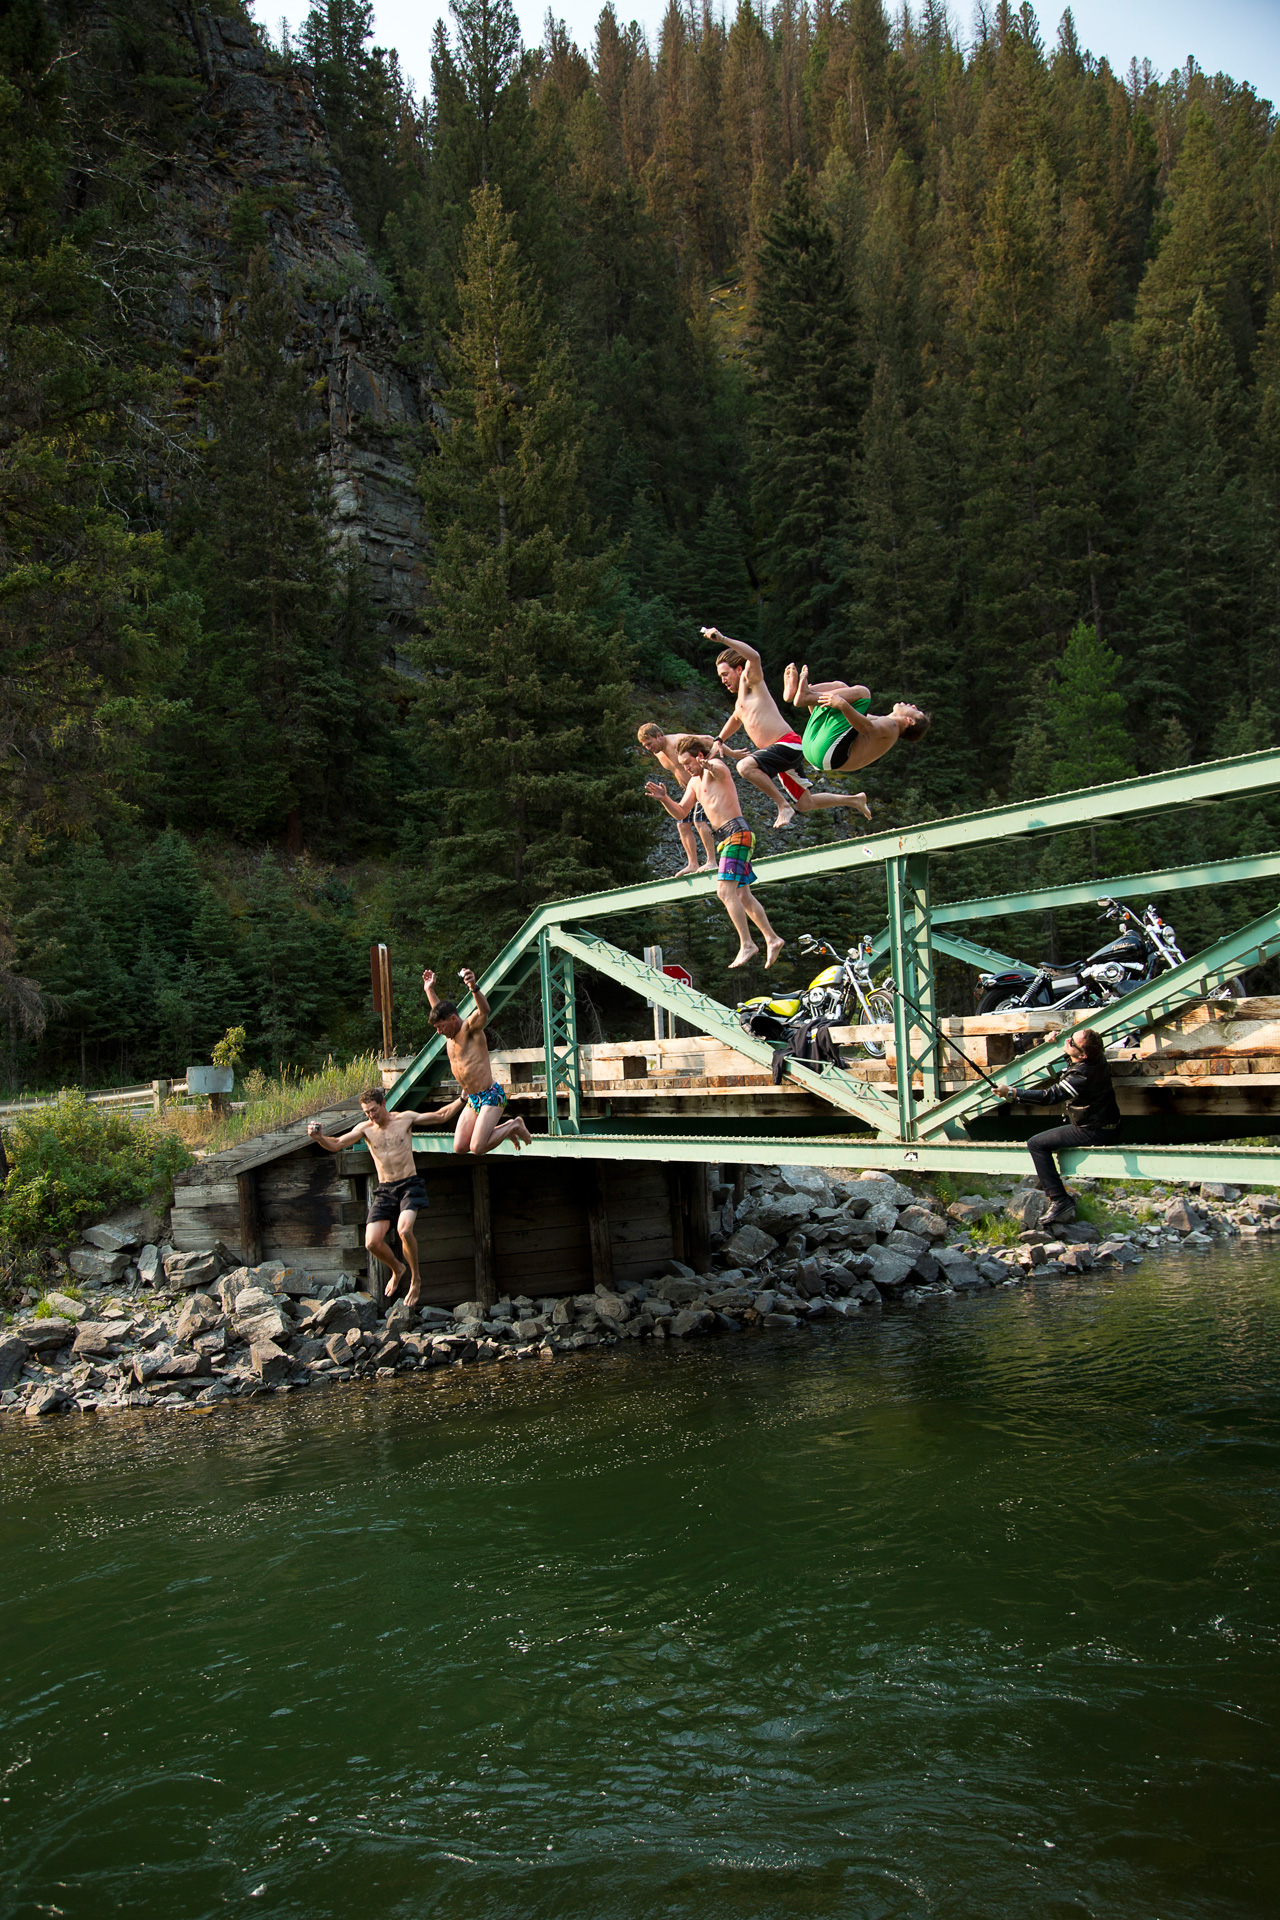 The team goes for an early morning bridge jump into the Galliton River in Montana